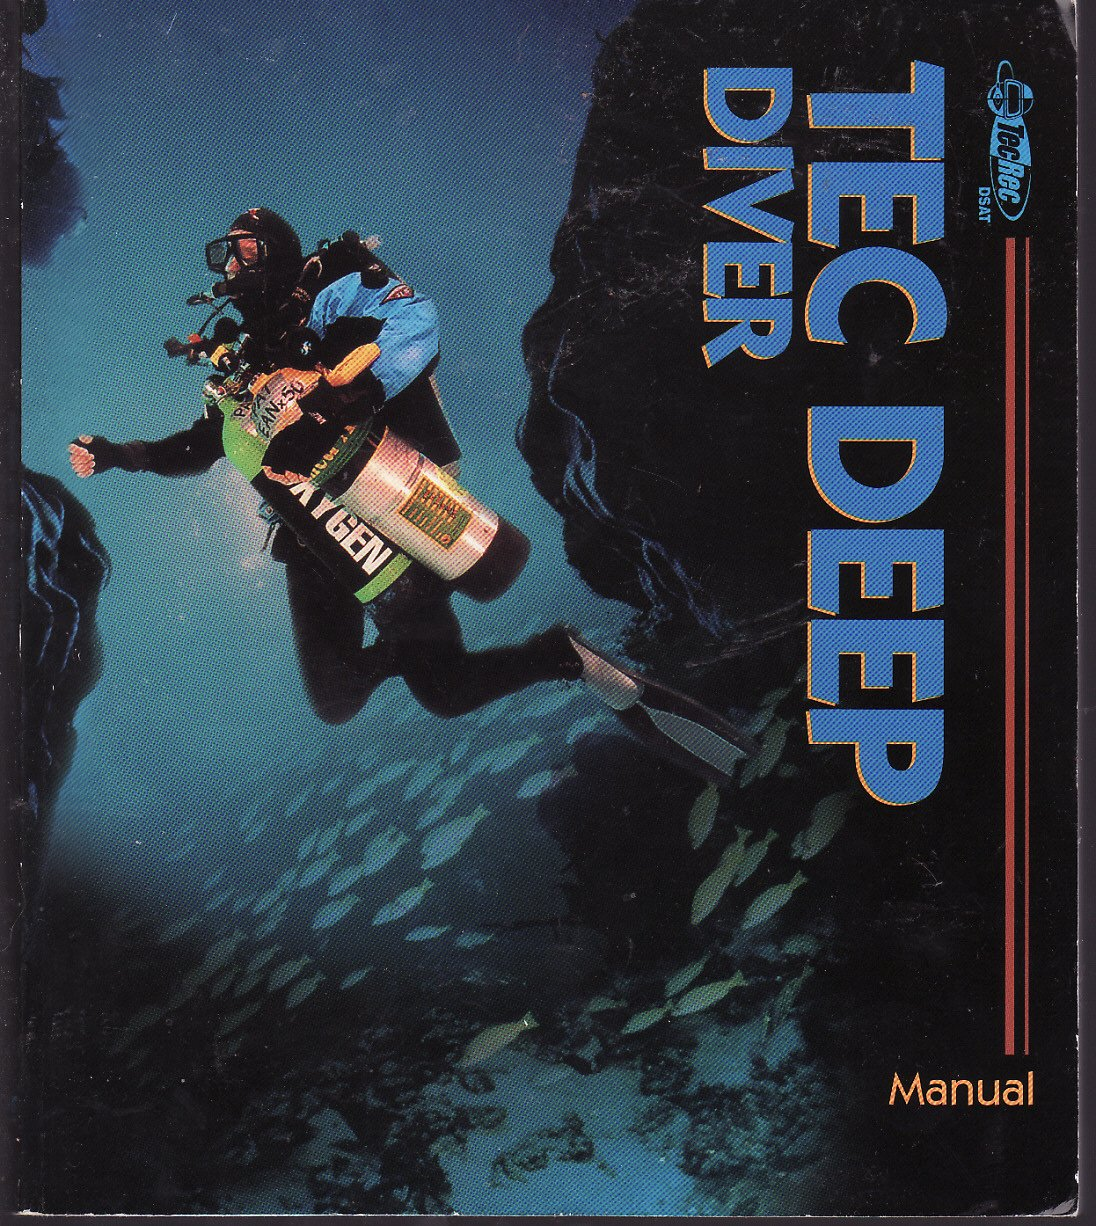 TEC Deep Diver Manual: Diving Science and Technology Corp: 9781878663252:  Amazon.com: Books